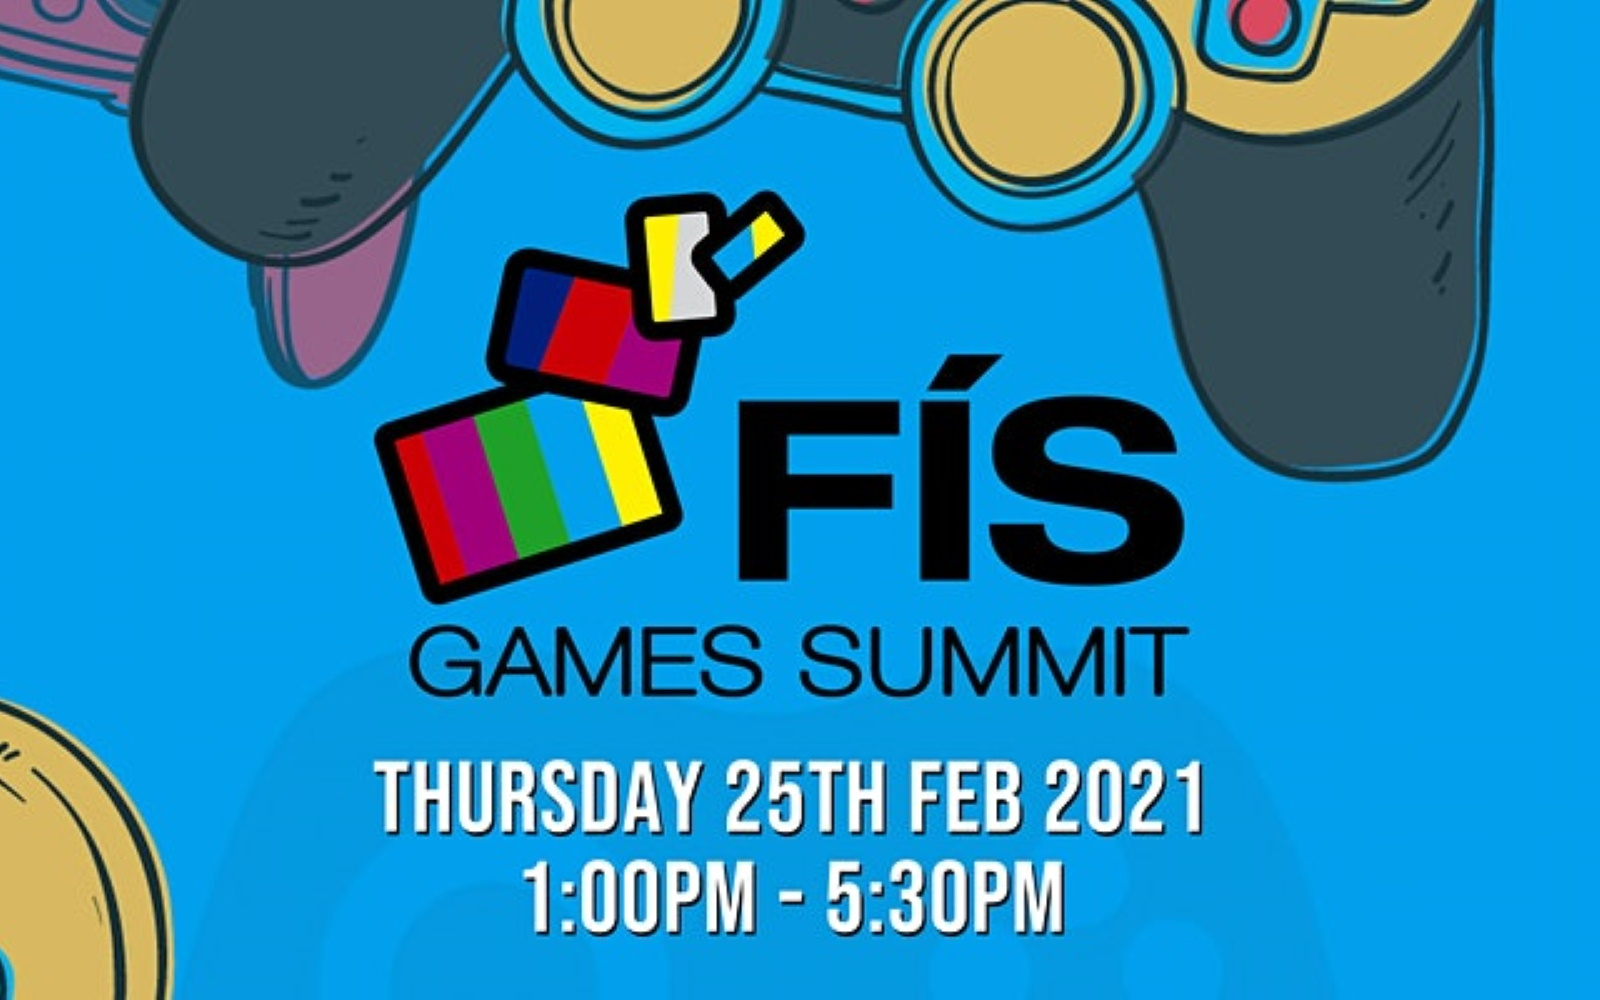 FÍS Games Summit Takes Place On Thursday 25th February